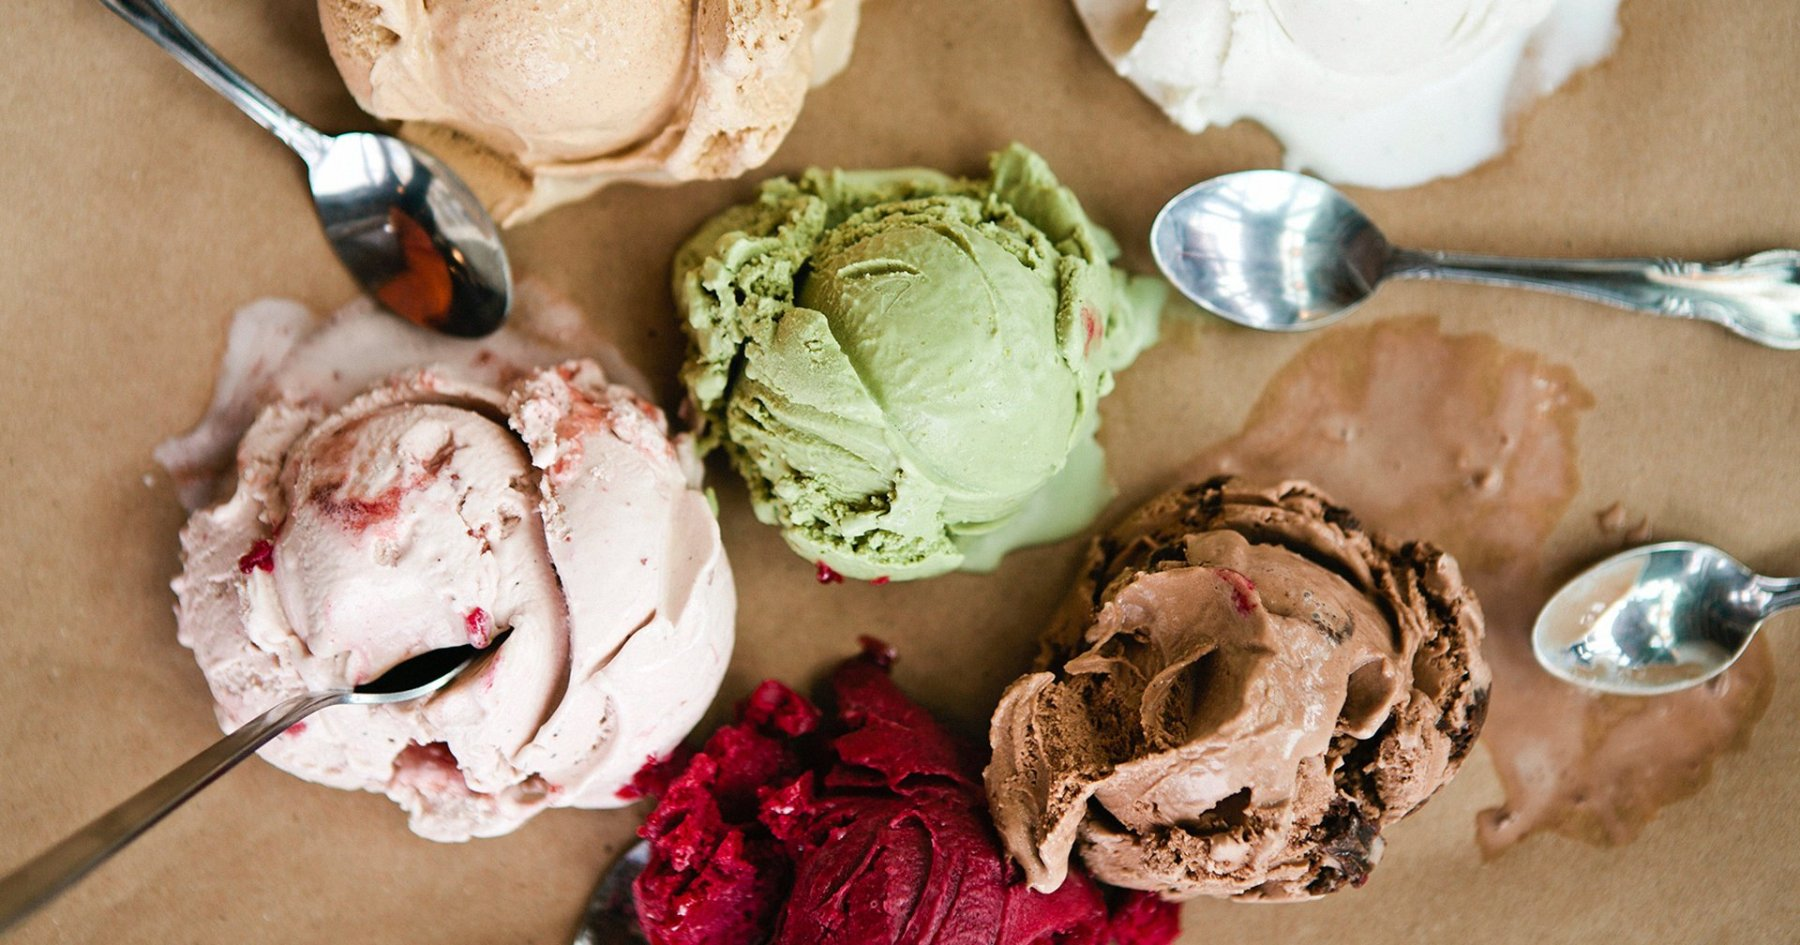 This Ice Cream Is So Good We Built an Entire Date Night Around It